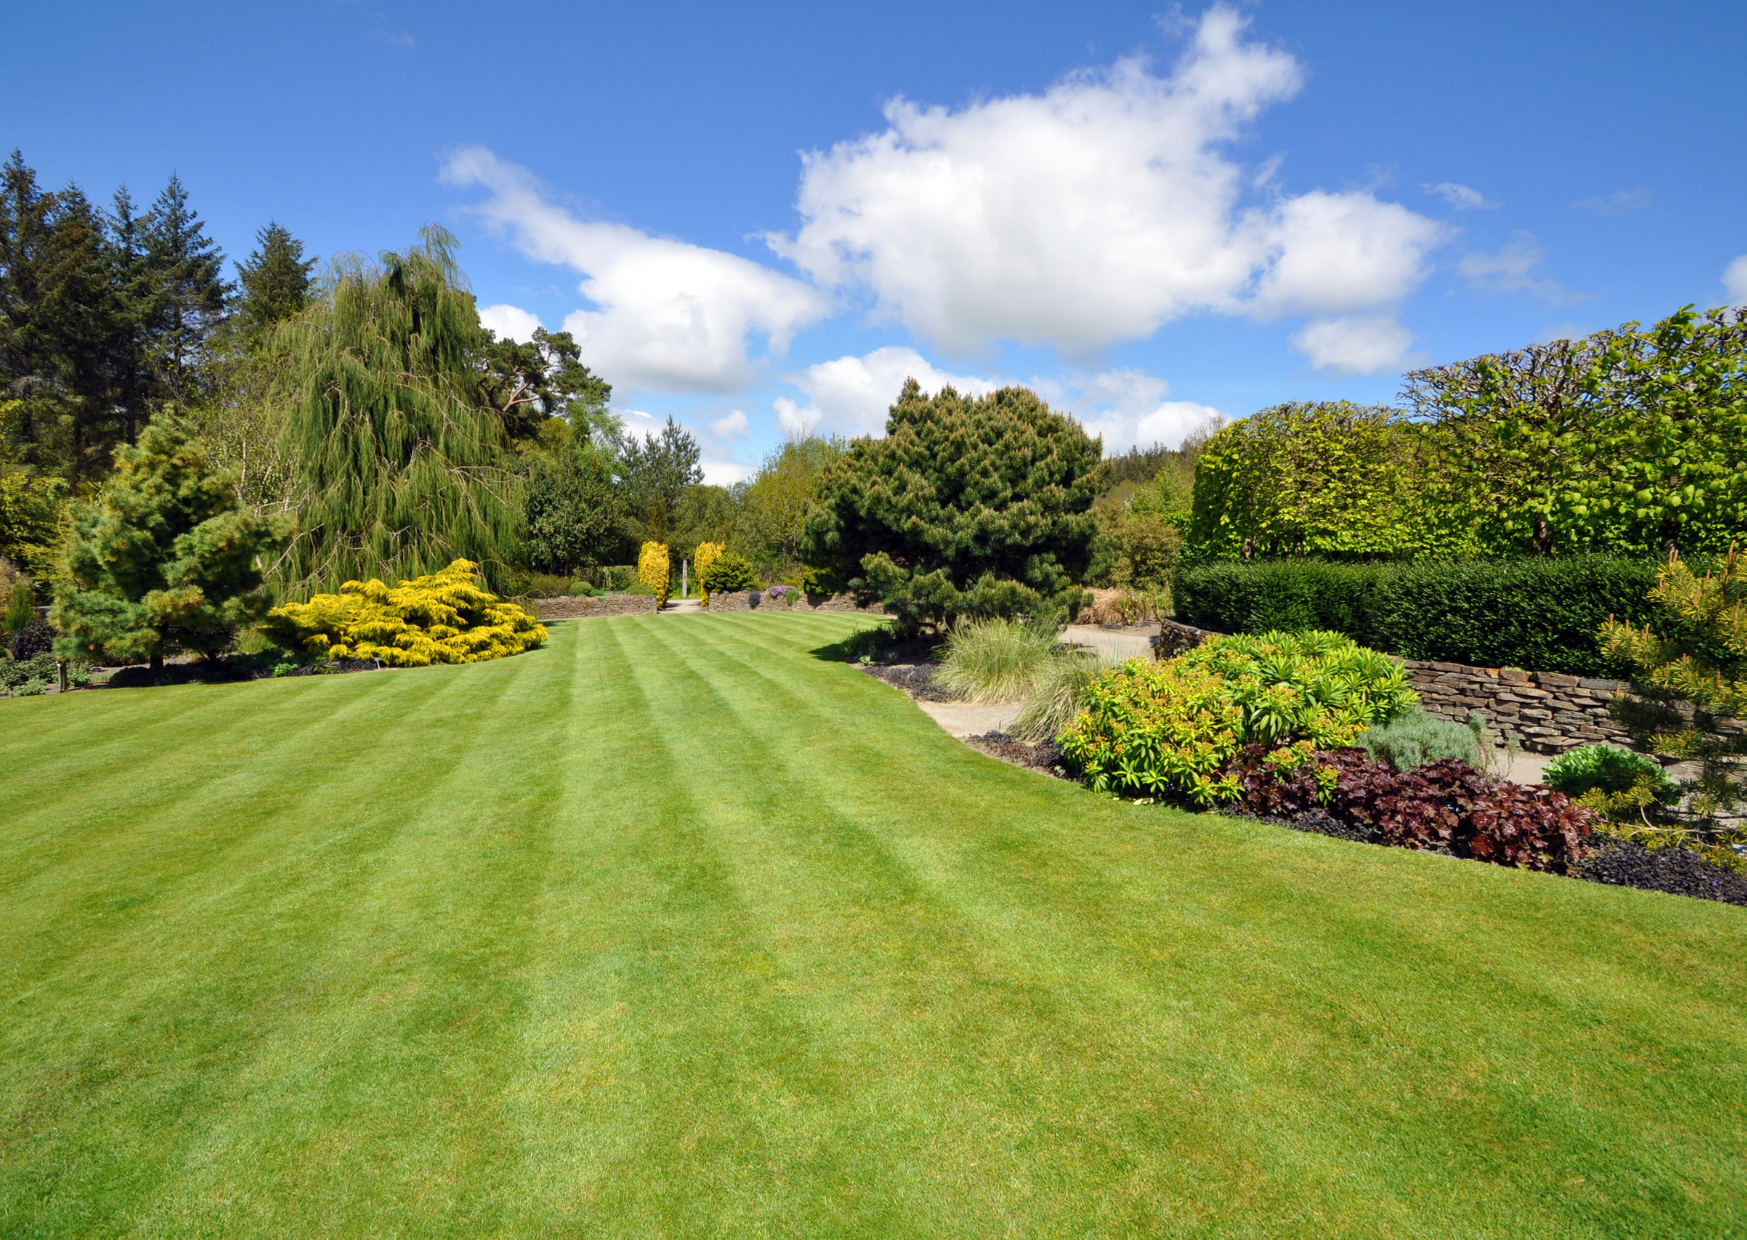 a photo of a garden in landscape